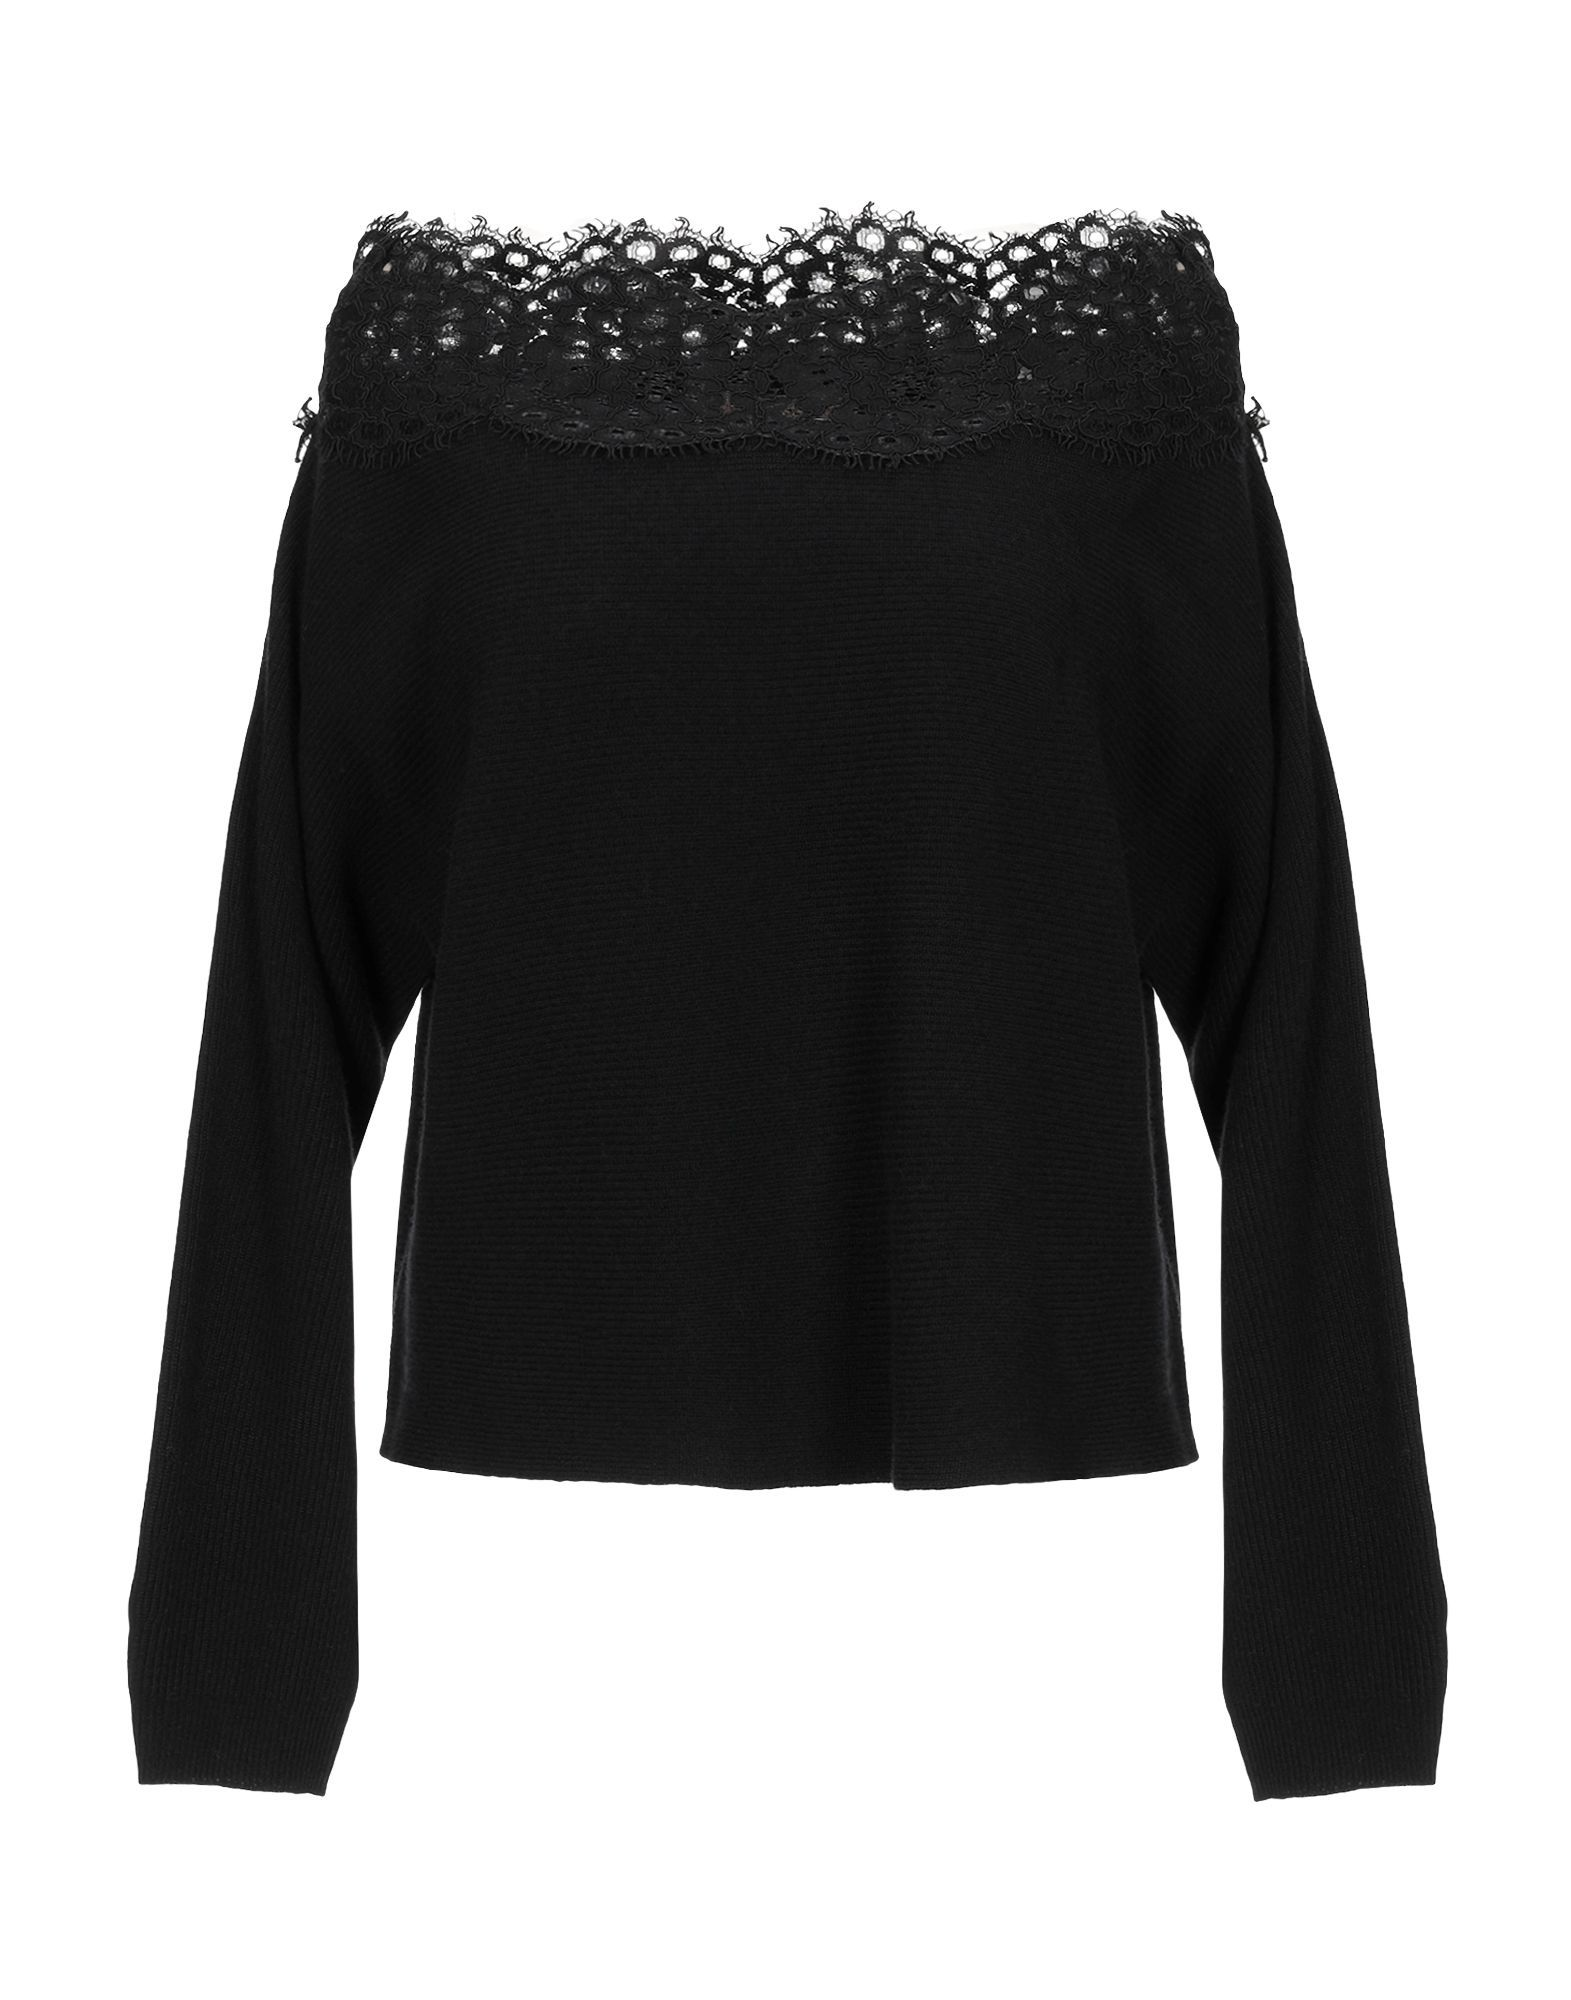 Twinset Black Wool And Lace Knit